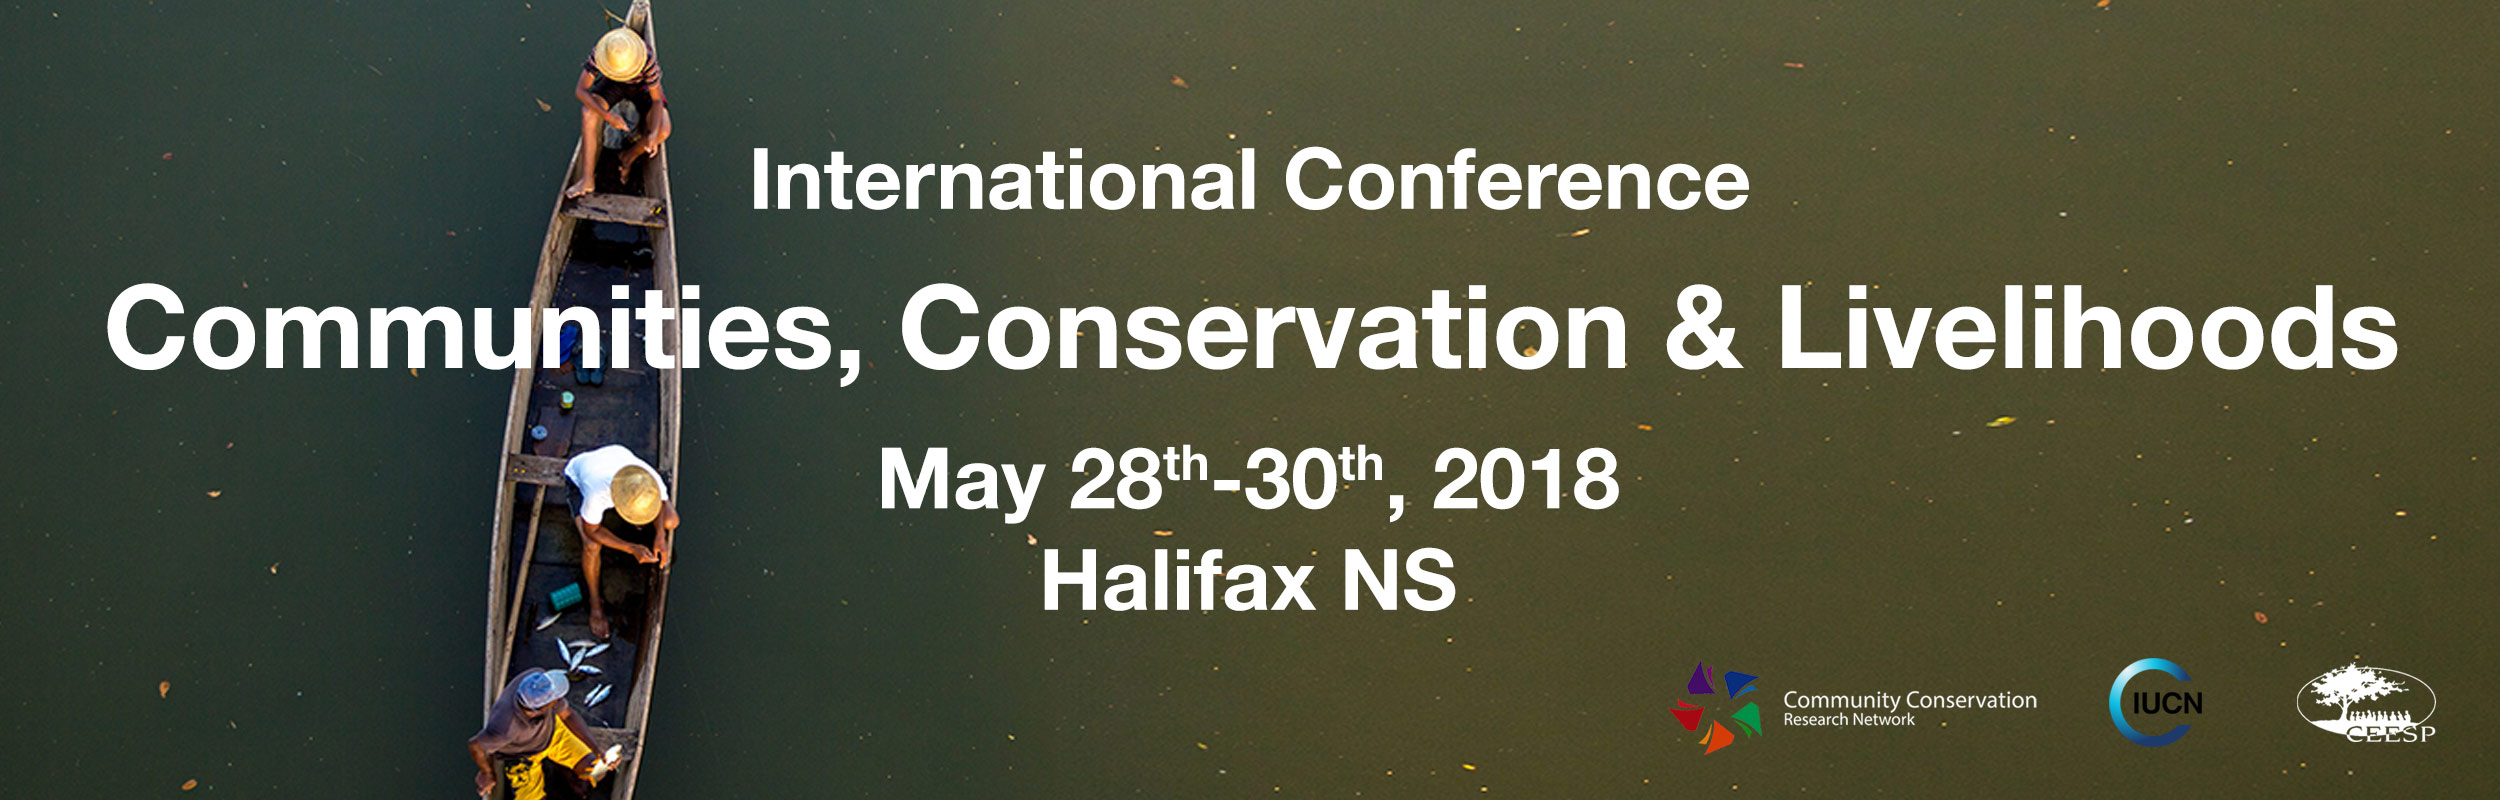 CCRN Conference in Halifax NS, May 2018